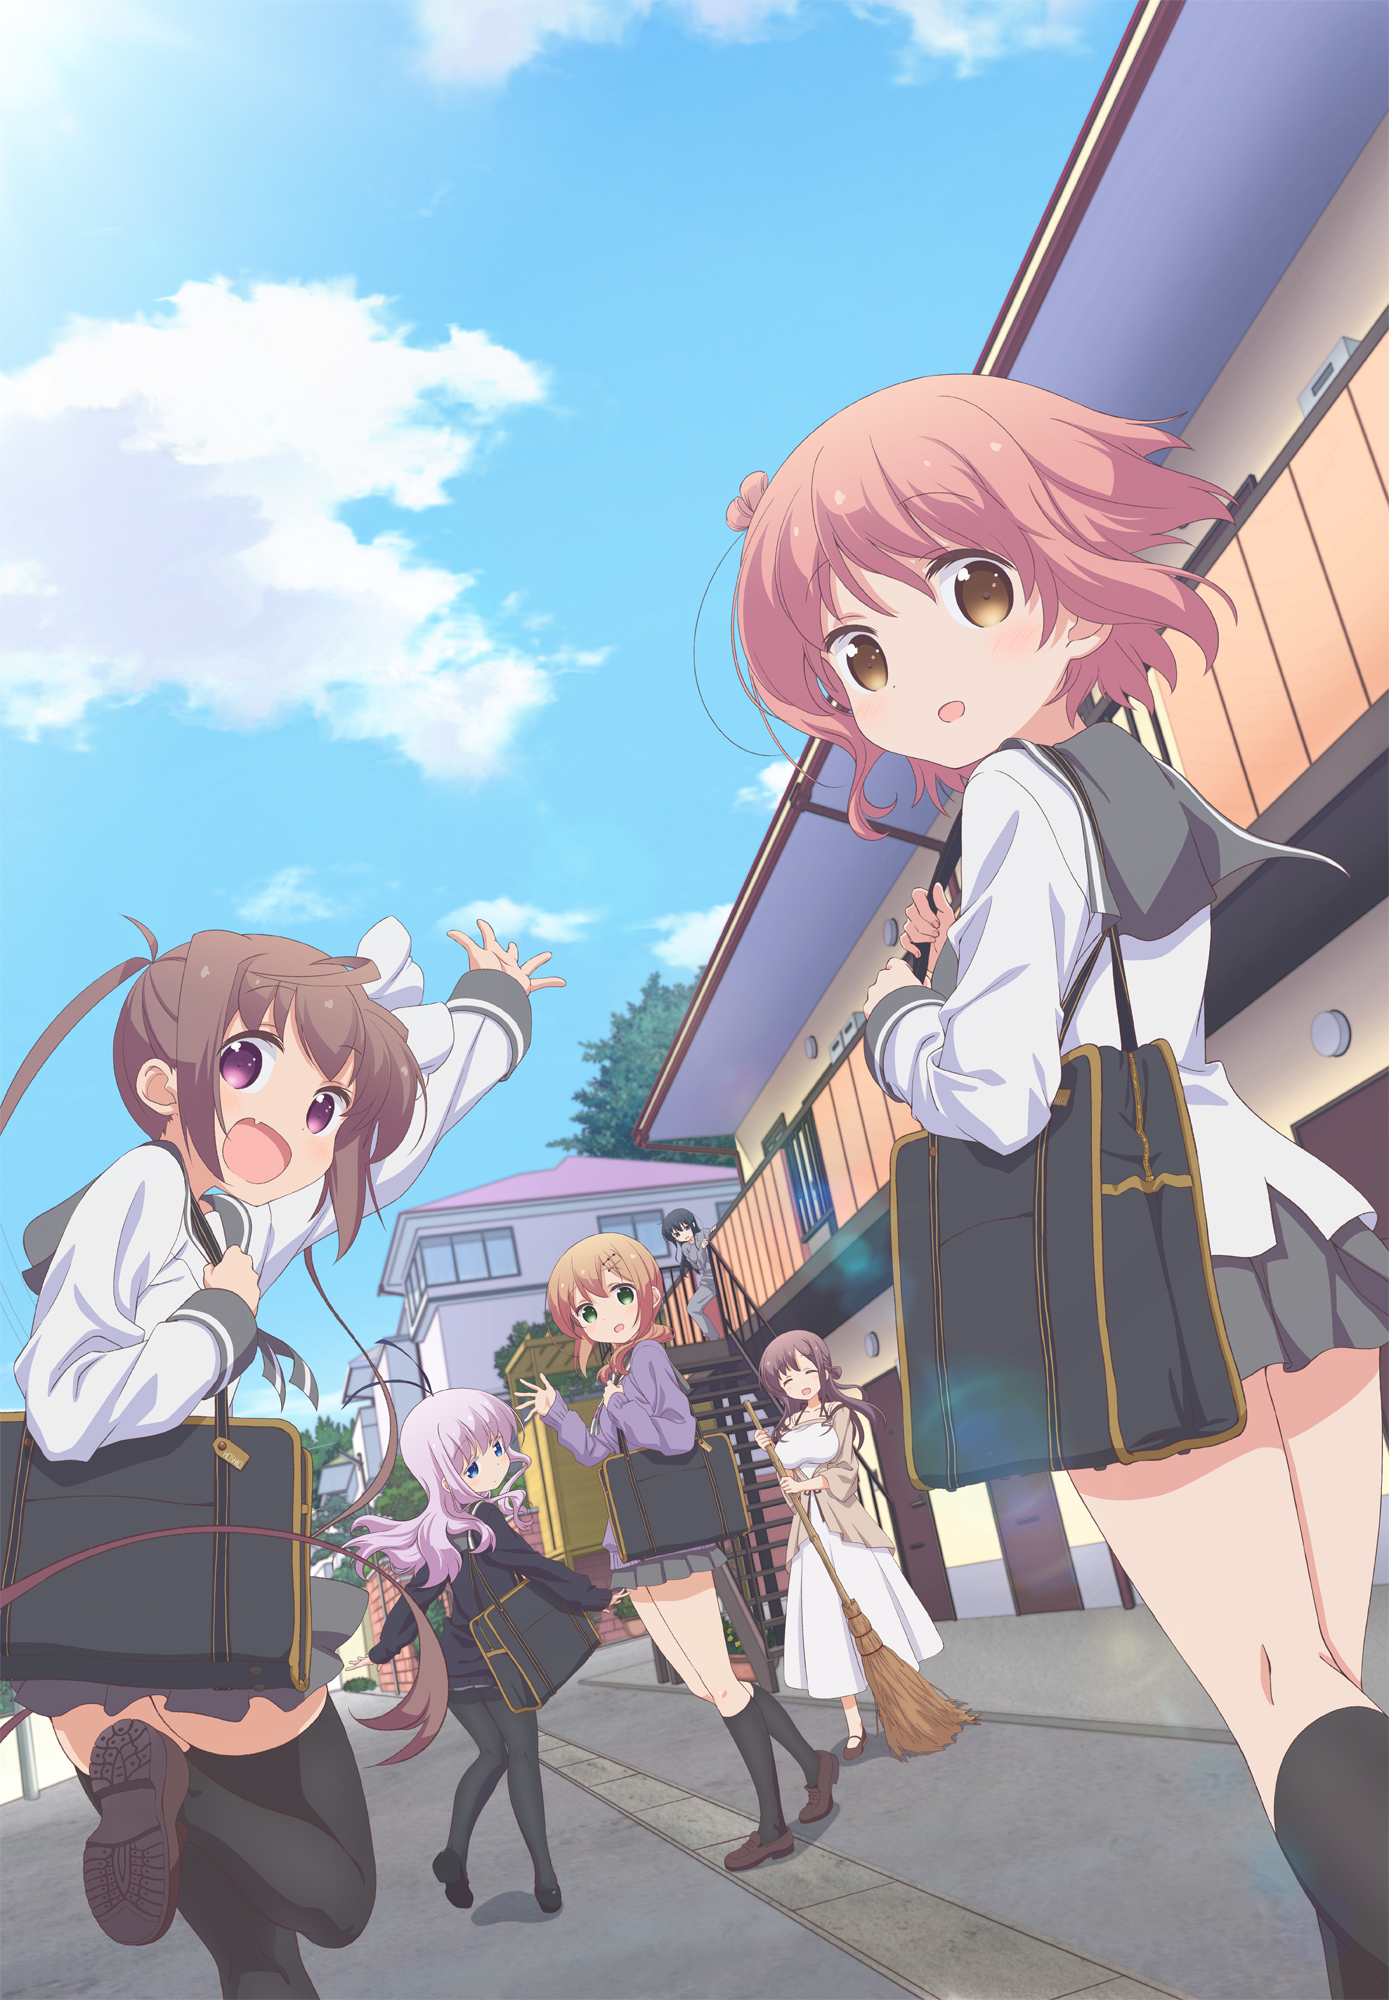 17 [Similar Anime] Like Slow Start